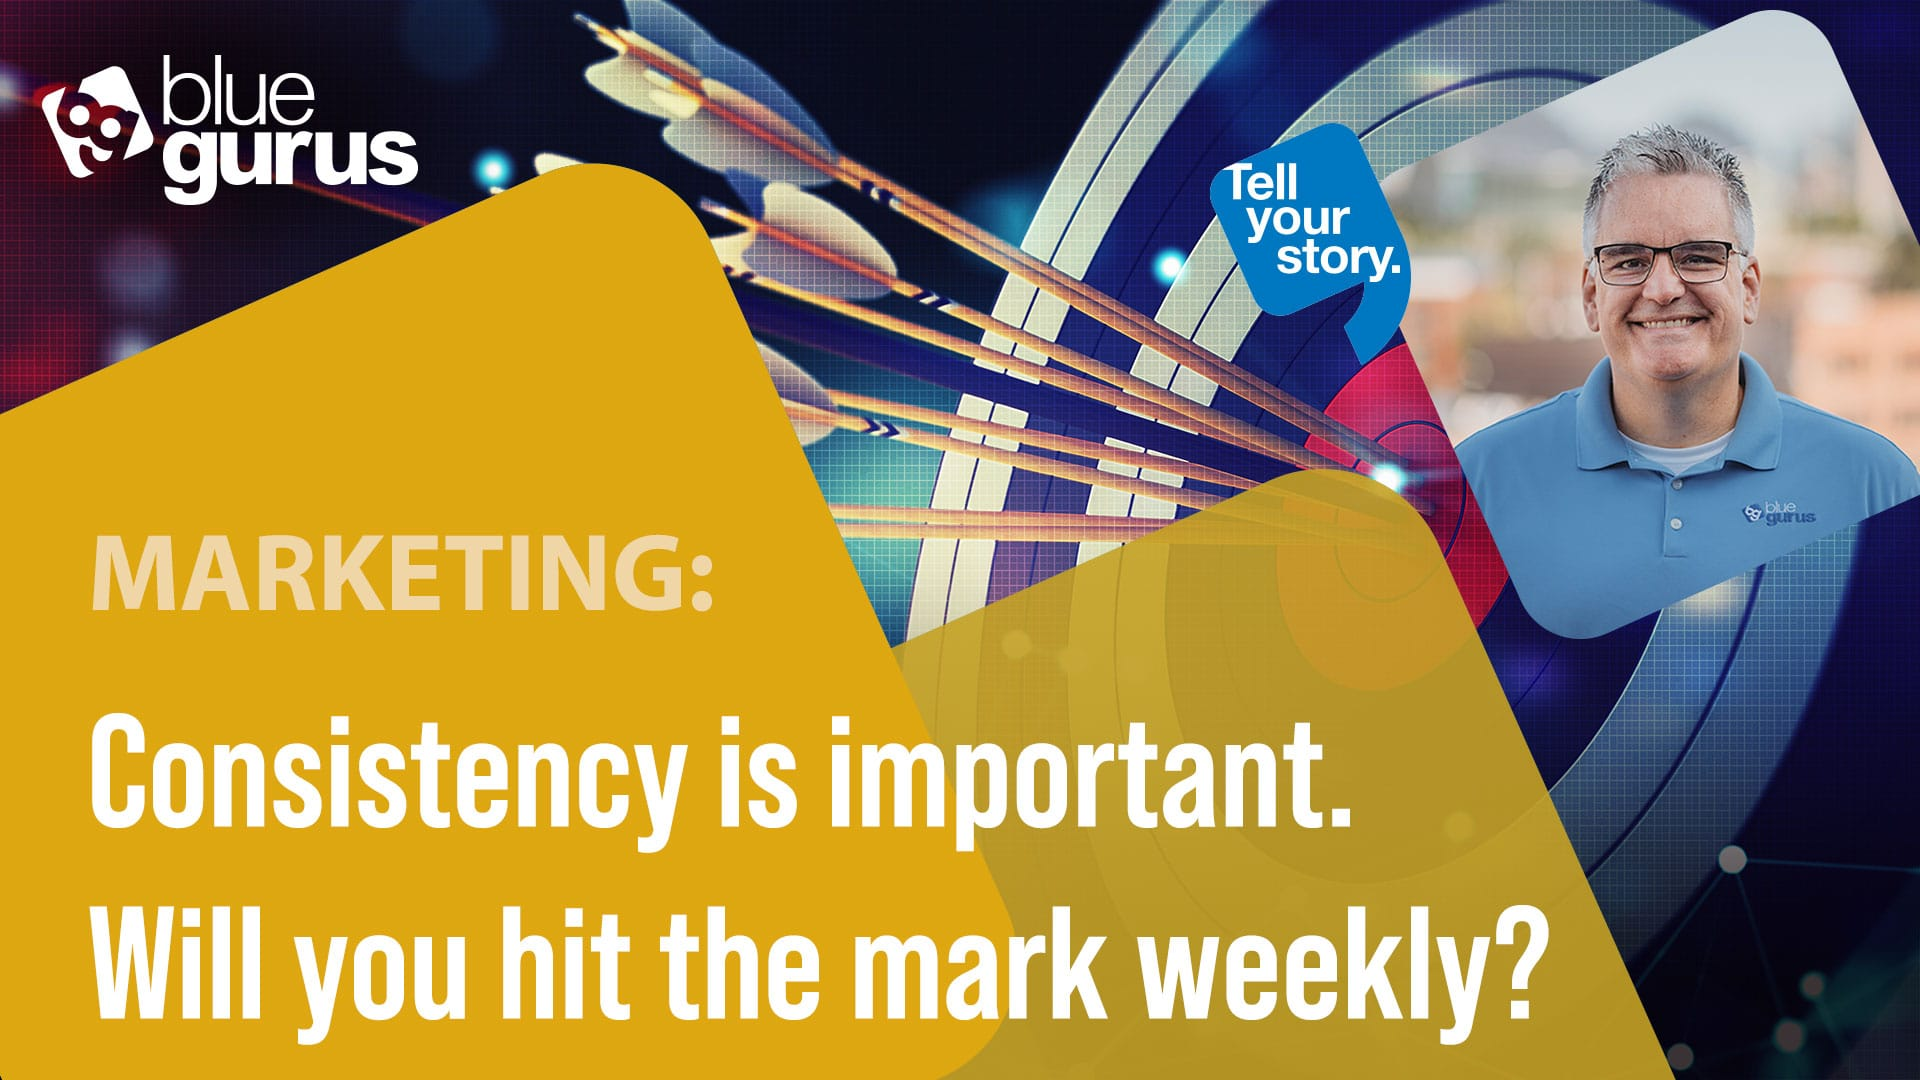 Consistency is important. Will you hit the mark weekly?